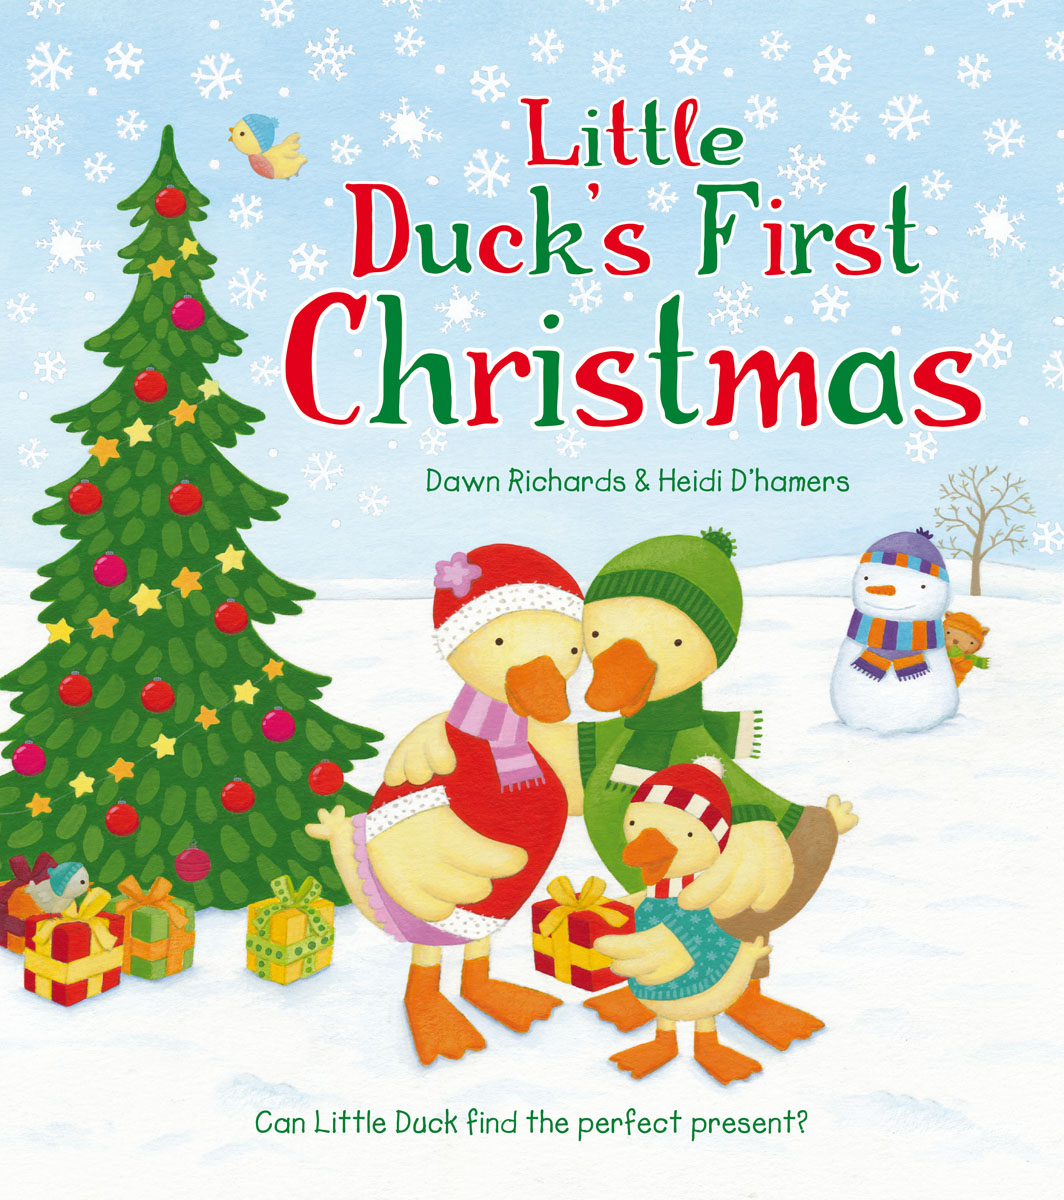 Little Duck's First Christmas